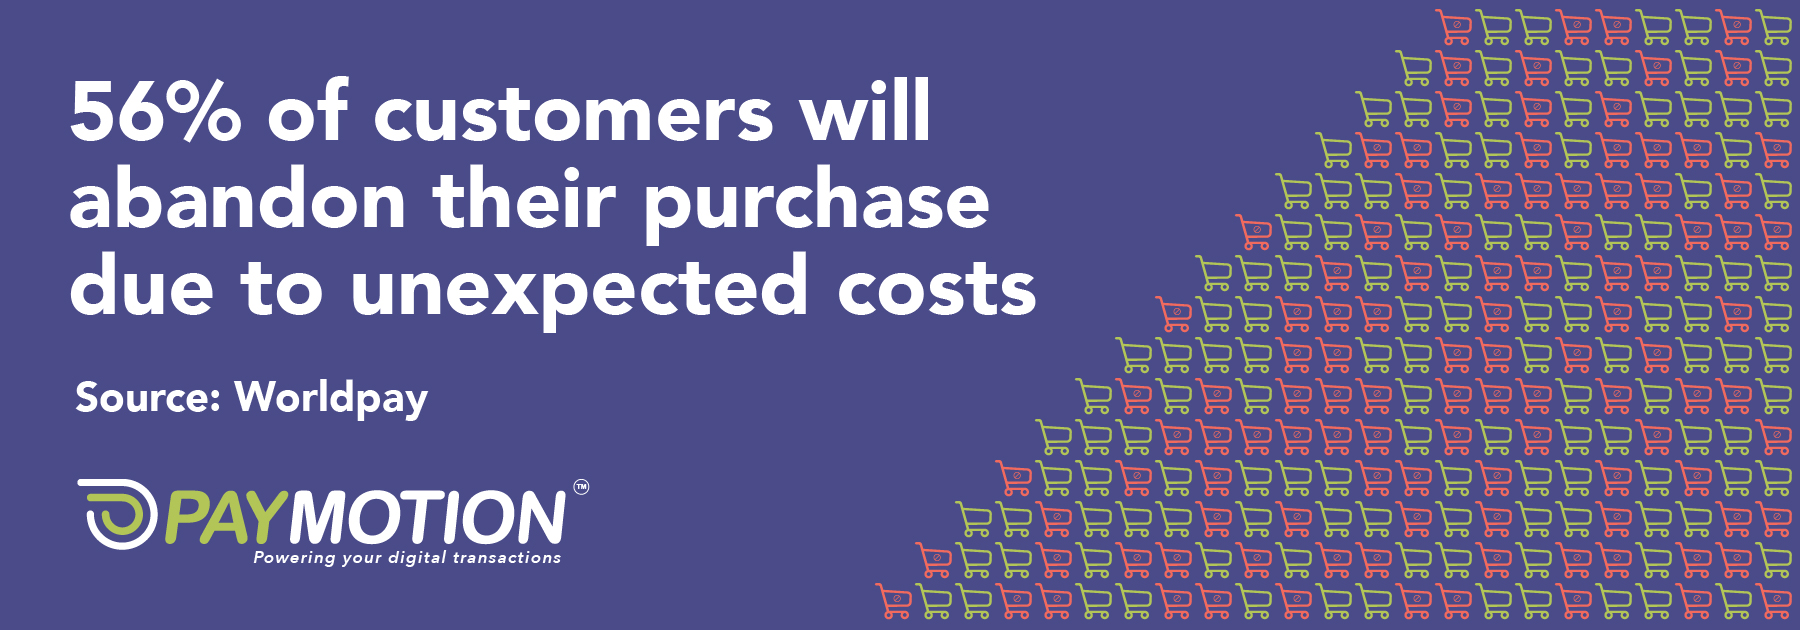 Global growth. Customers will abandon their purchase due to unexpected costs.